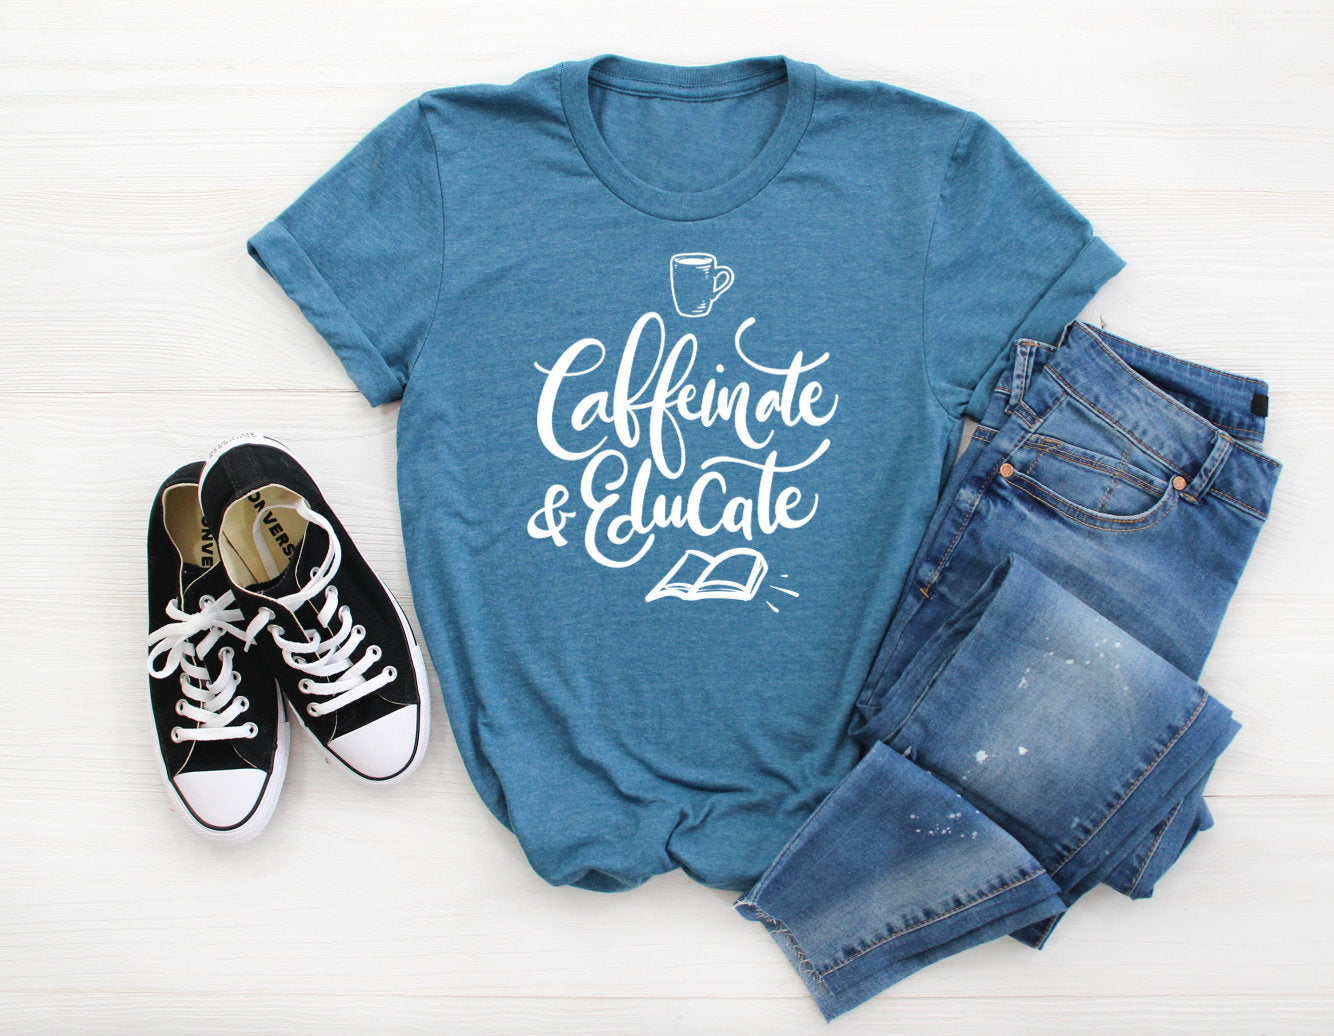 Caffeinate & Educate Unisex T-Shirt - Teacher T-shirt - Coffee Teacher Tee - Gift for Teacher - Cute Teacher T-shirt